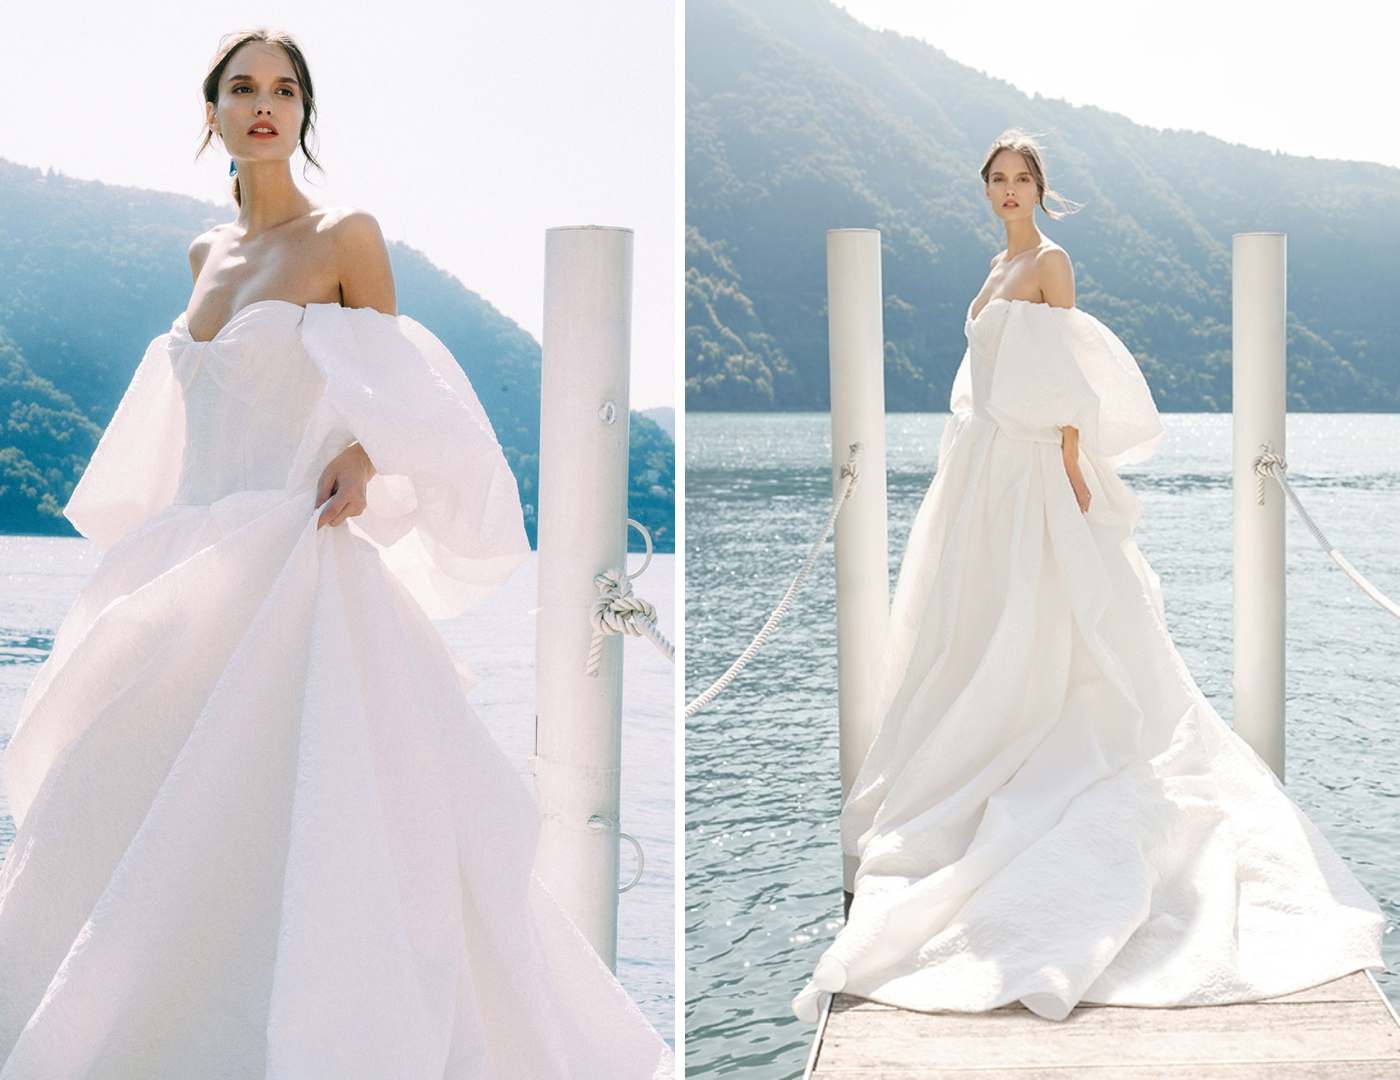 Monique Lhuillier wedding dress designer